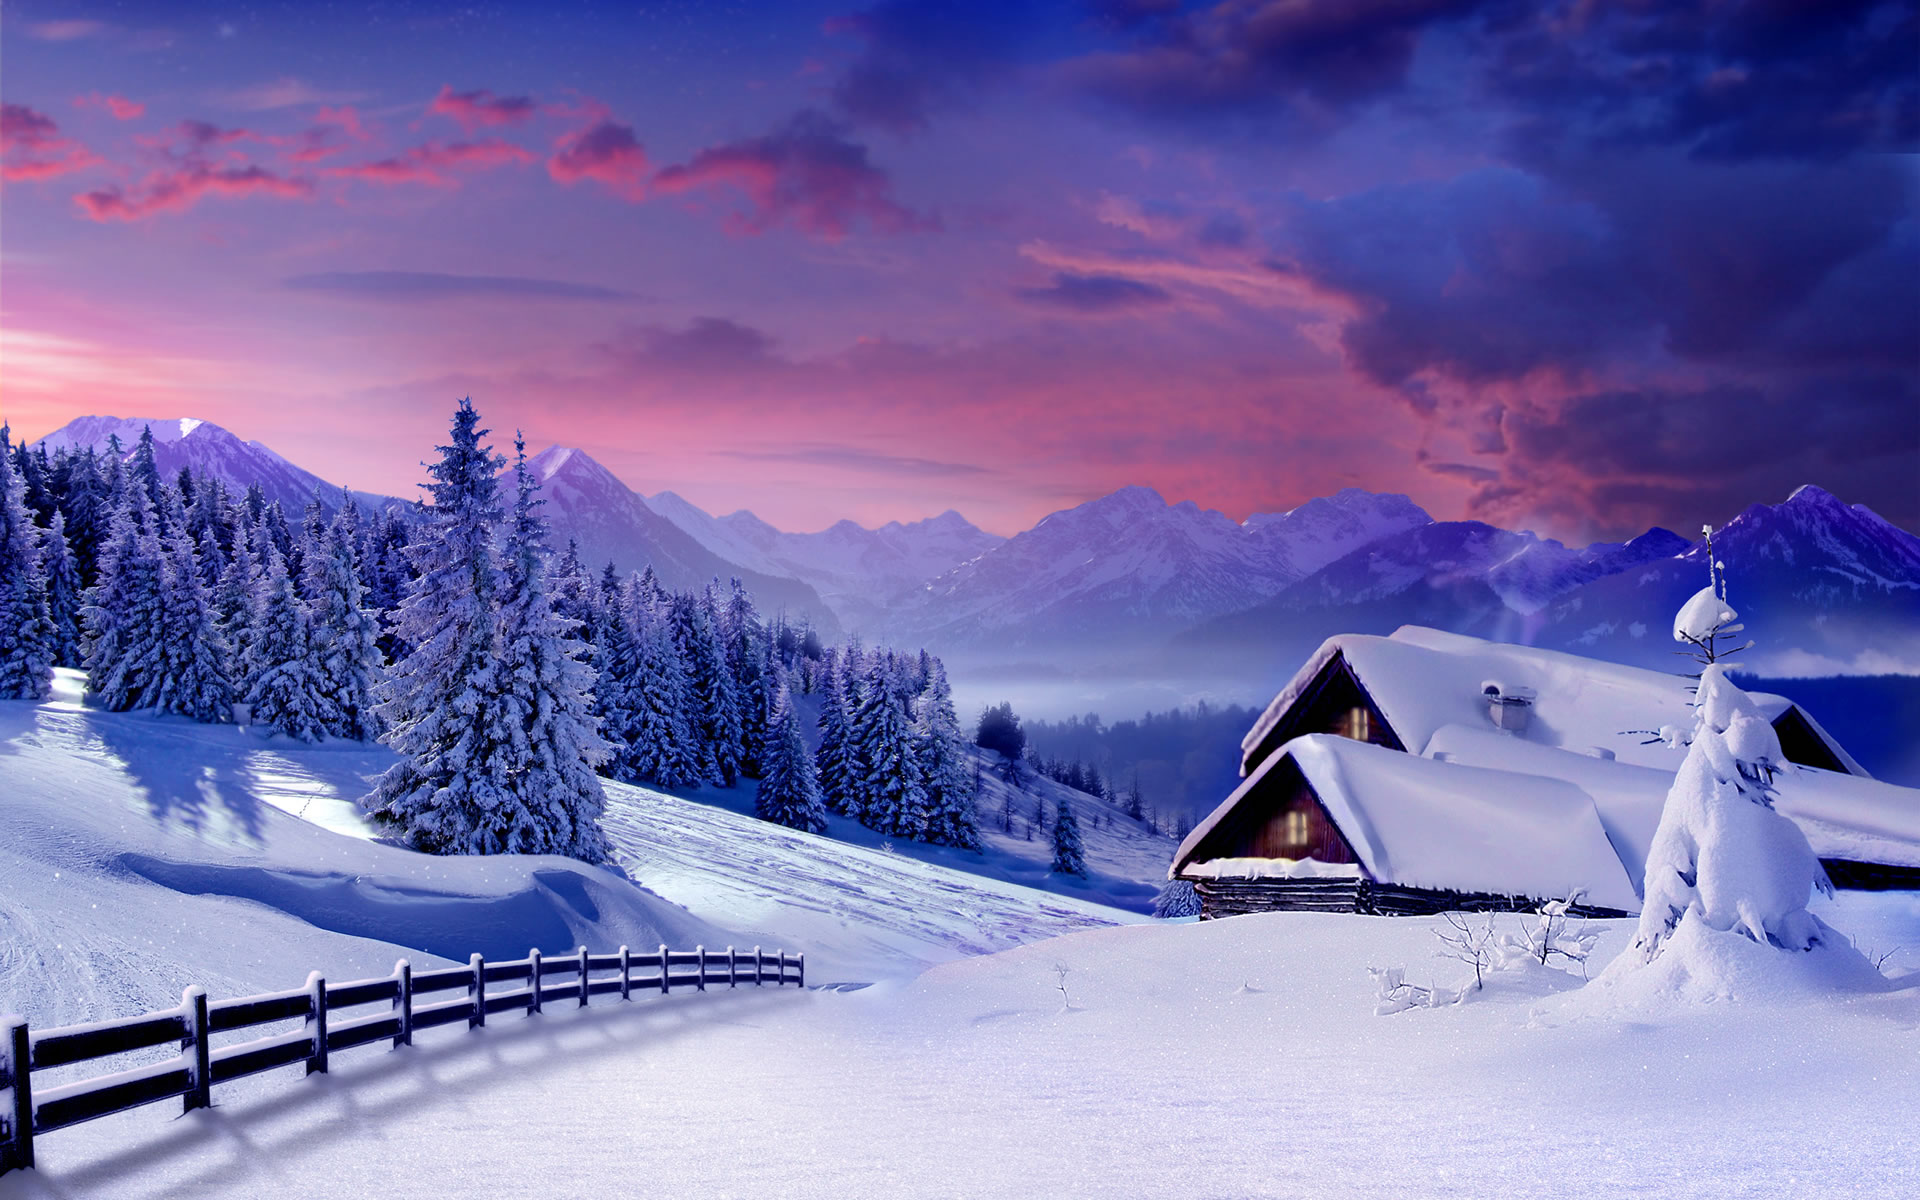 winter backgrounds 2